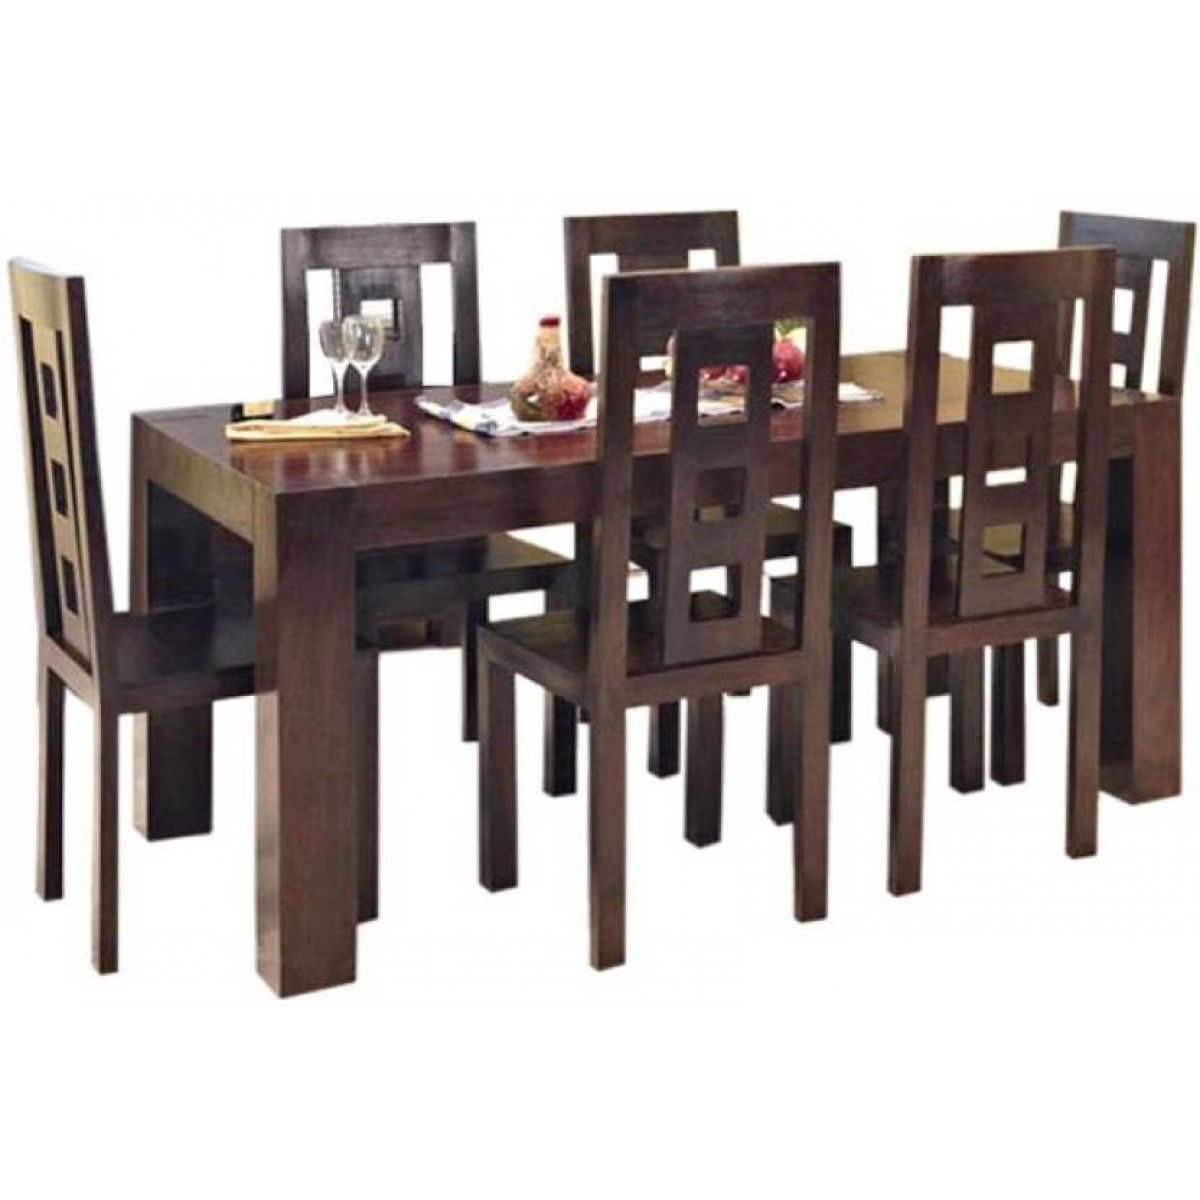 Six Seater Dining Table Online Walnut Brown Color Finishing Buy Online This Dini Wooden Dining Table Designs 6 Seater Dining Table Wooden Dining Room Table